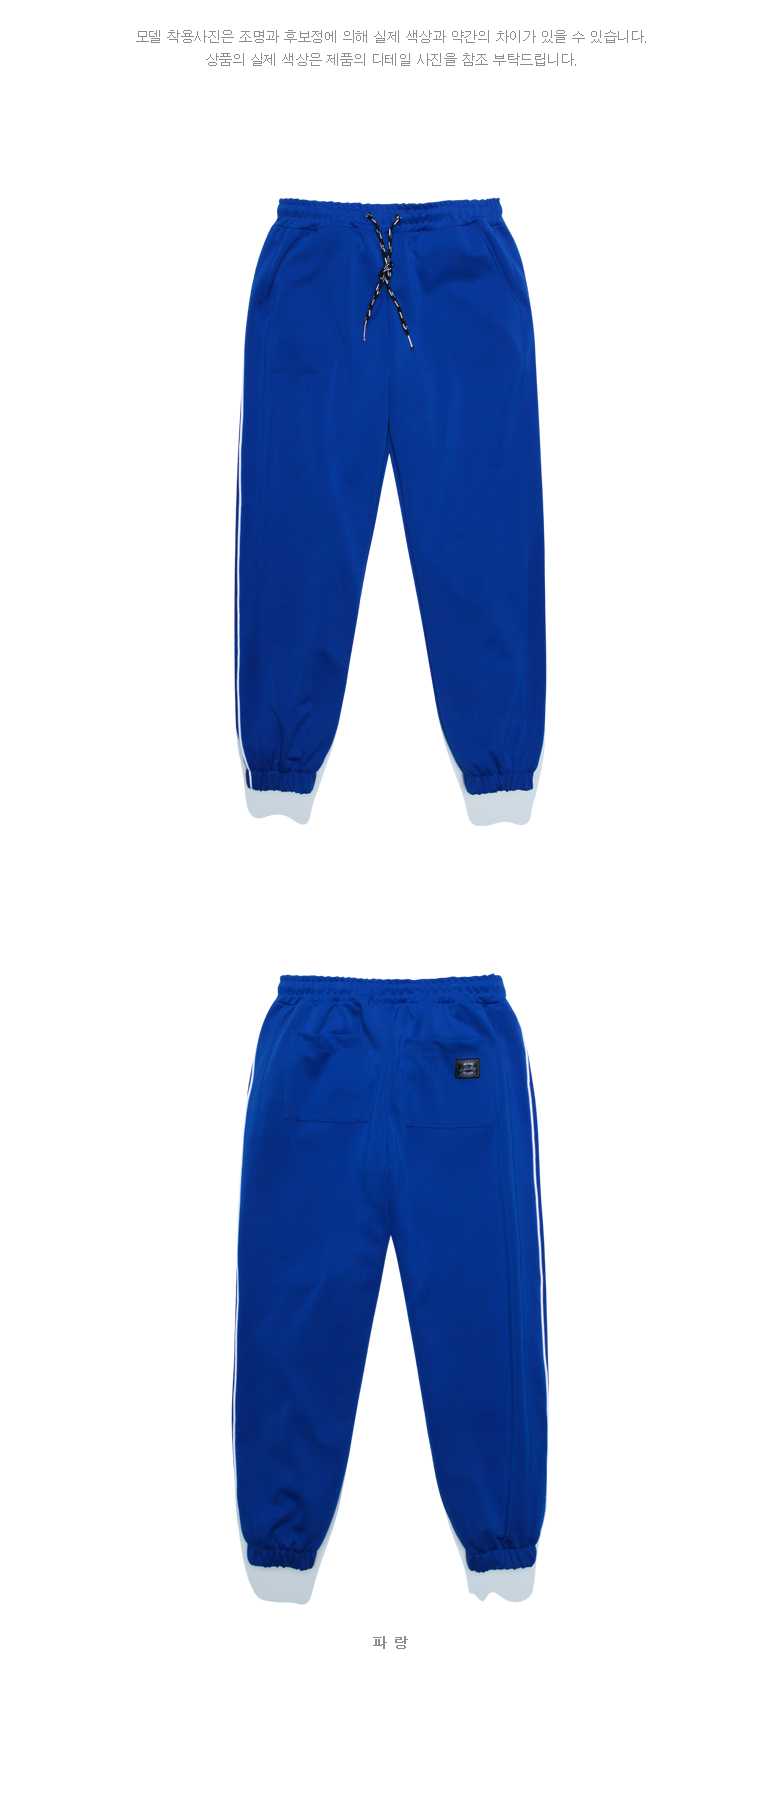 20190422_pl_walkingjogger_detail_blue_kang_01.jpg